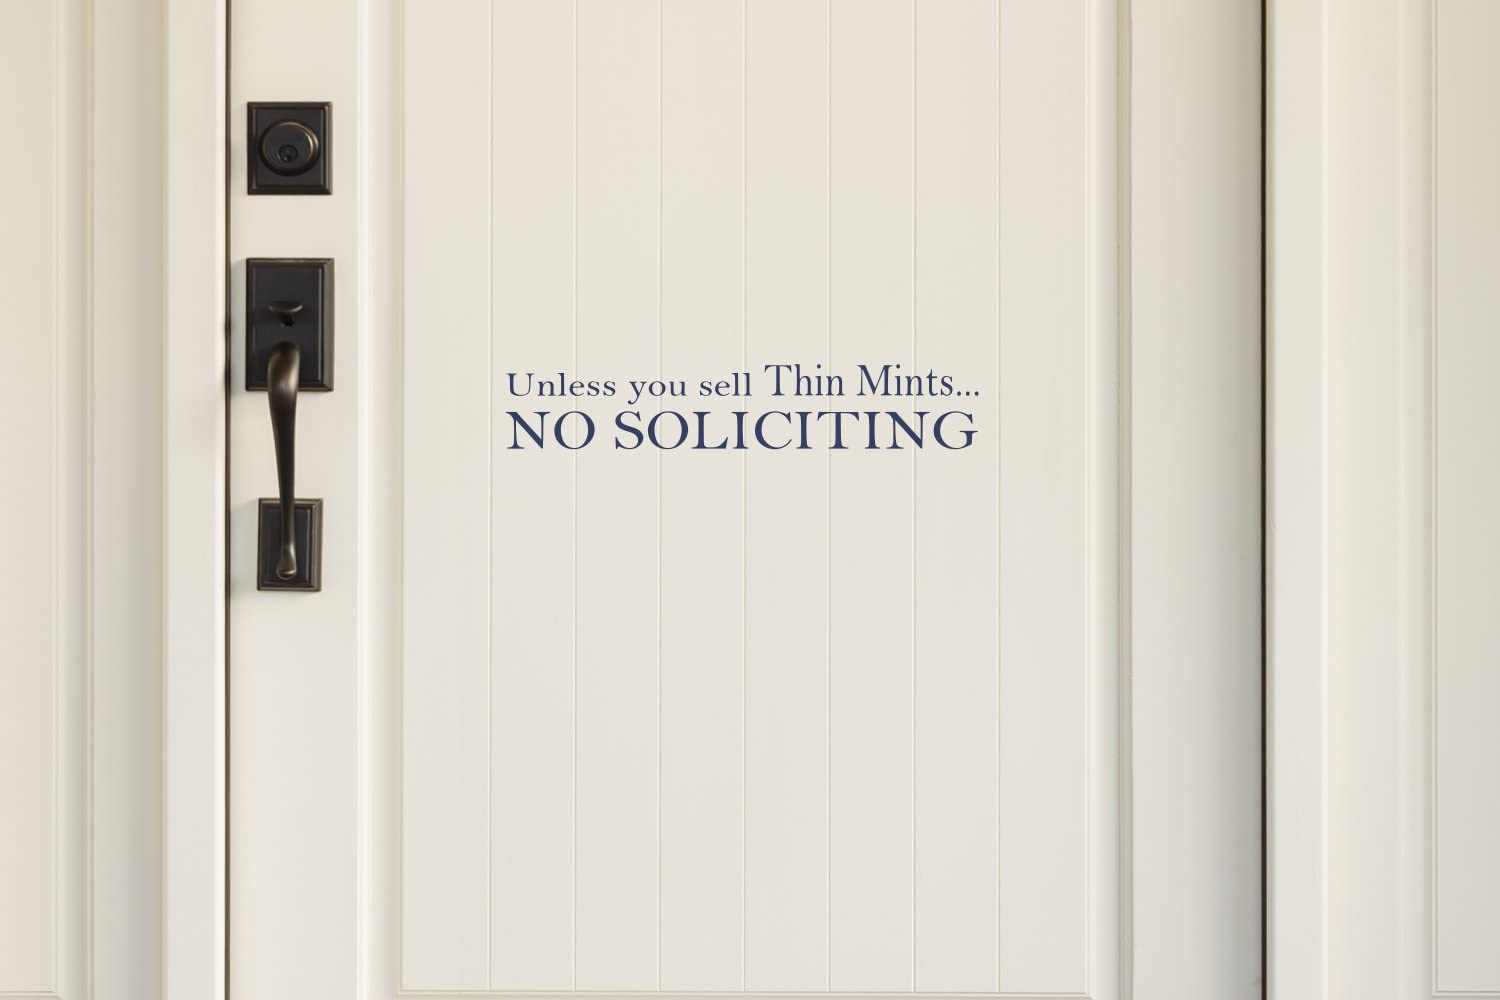 Navy Blue 19 W X 3.75 H Unless You Sell Thin Mints No Soliciting Vinyl Decal